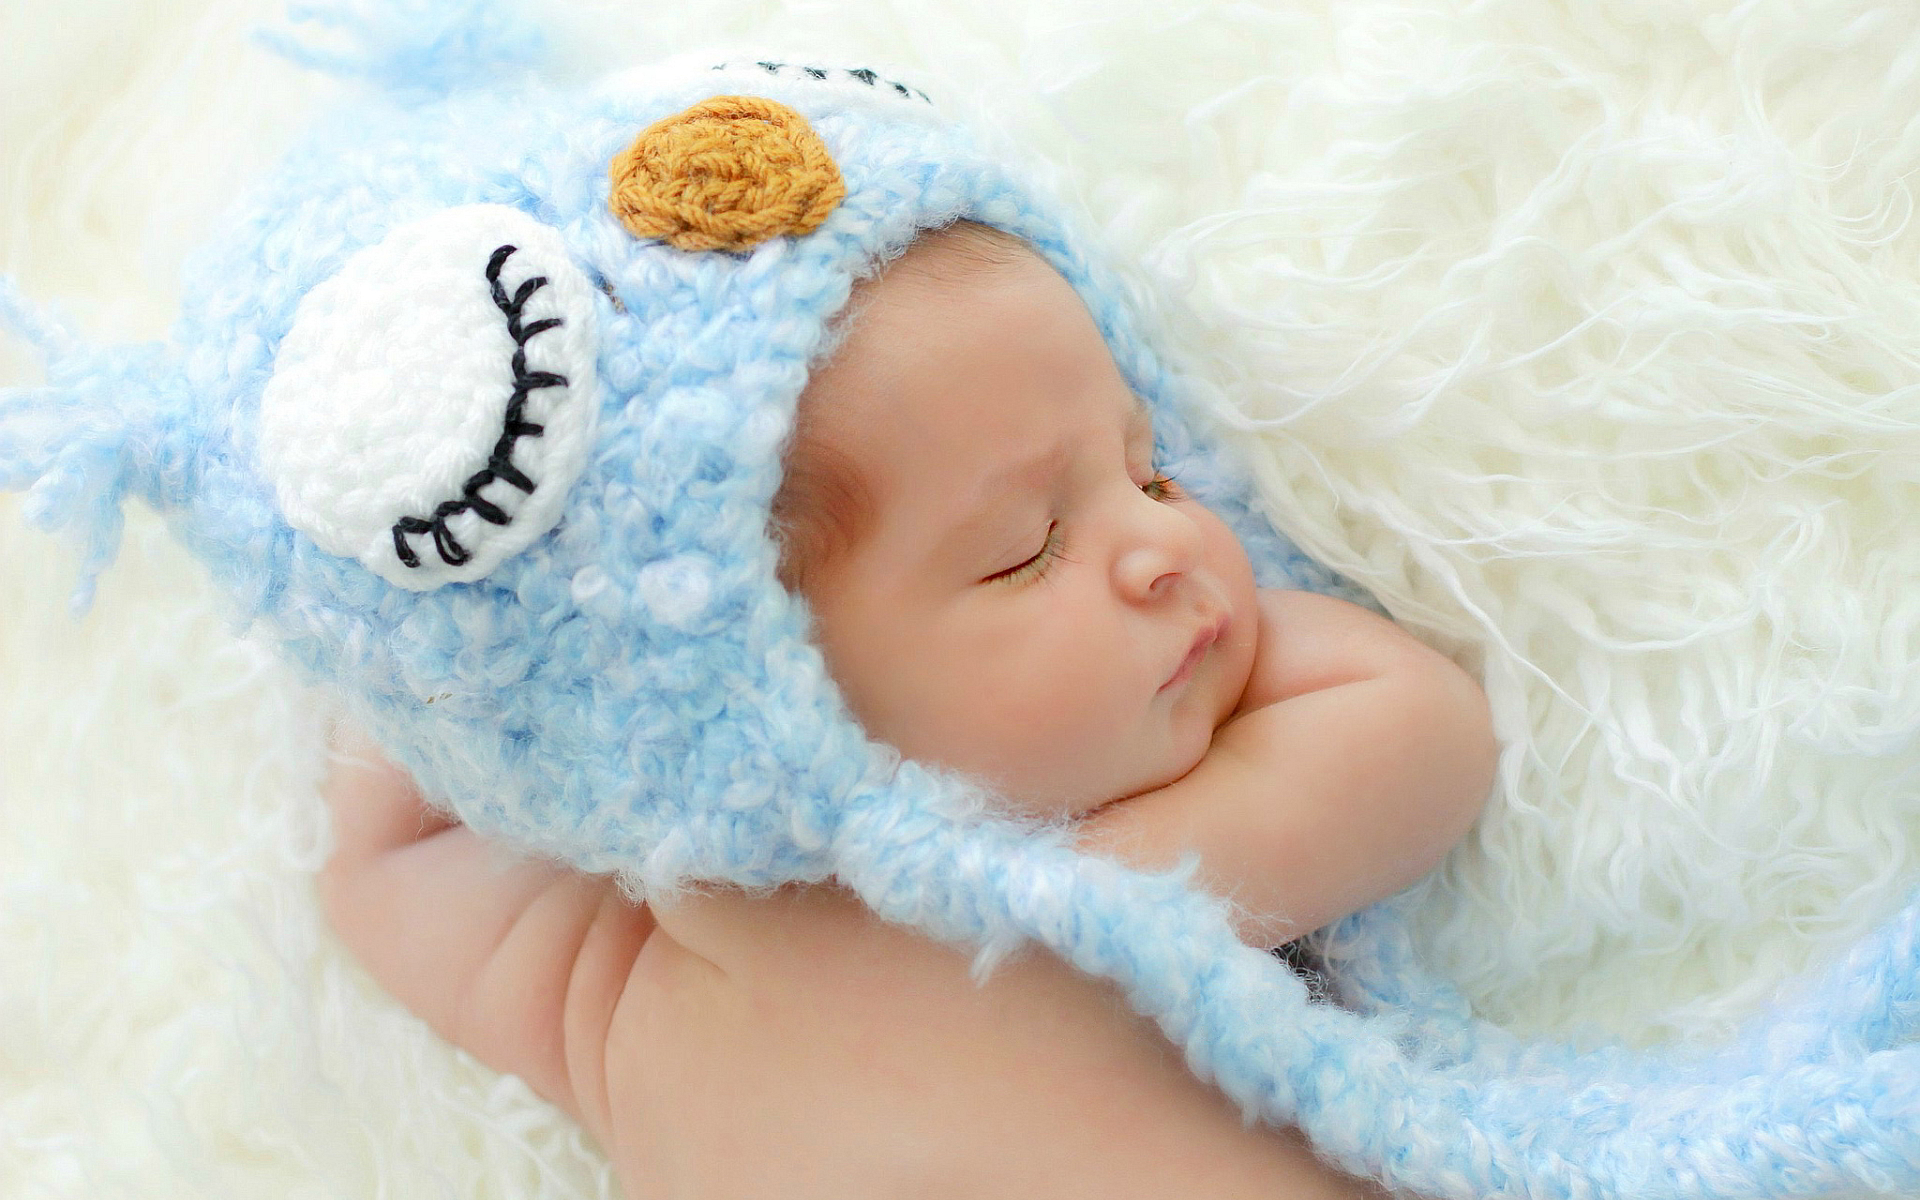 Cute baby backgrounds wallpaper high definition high for Boby wallpaper